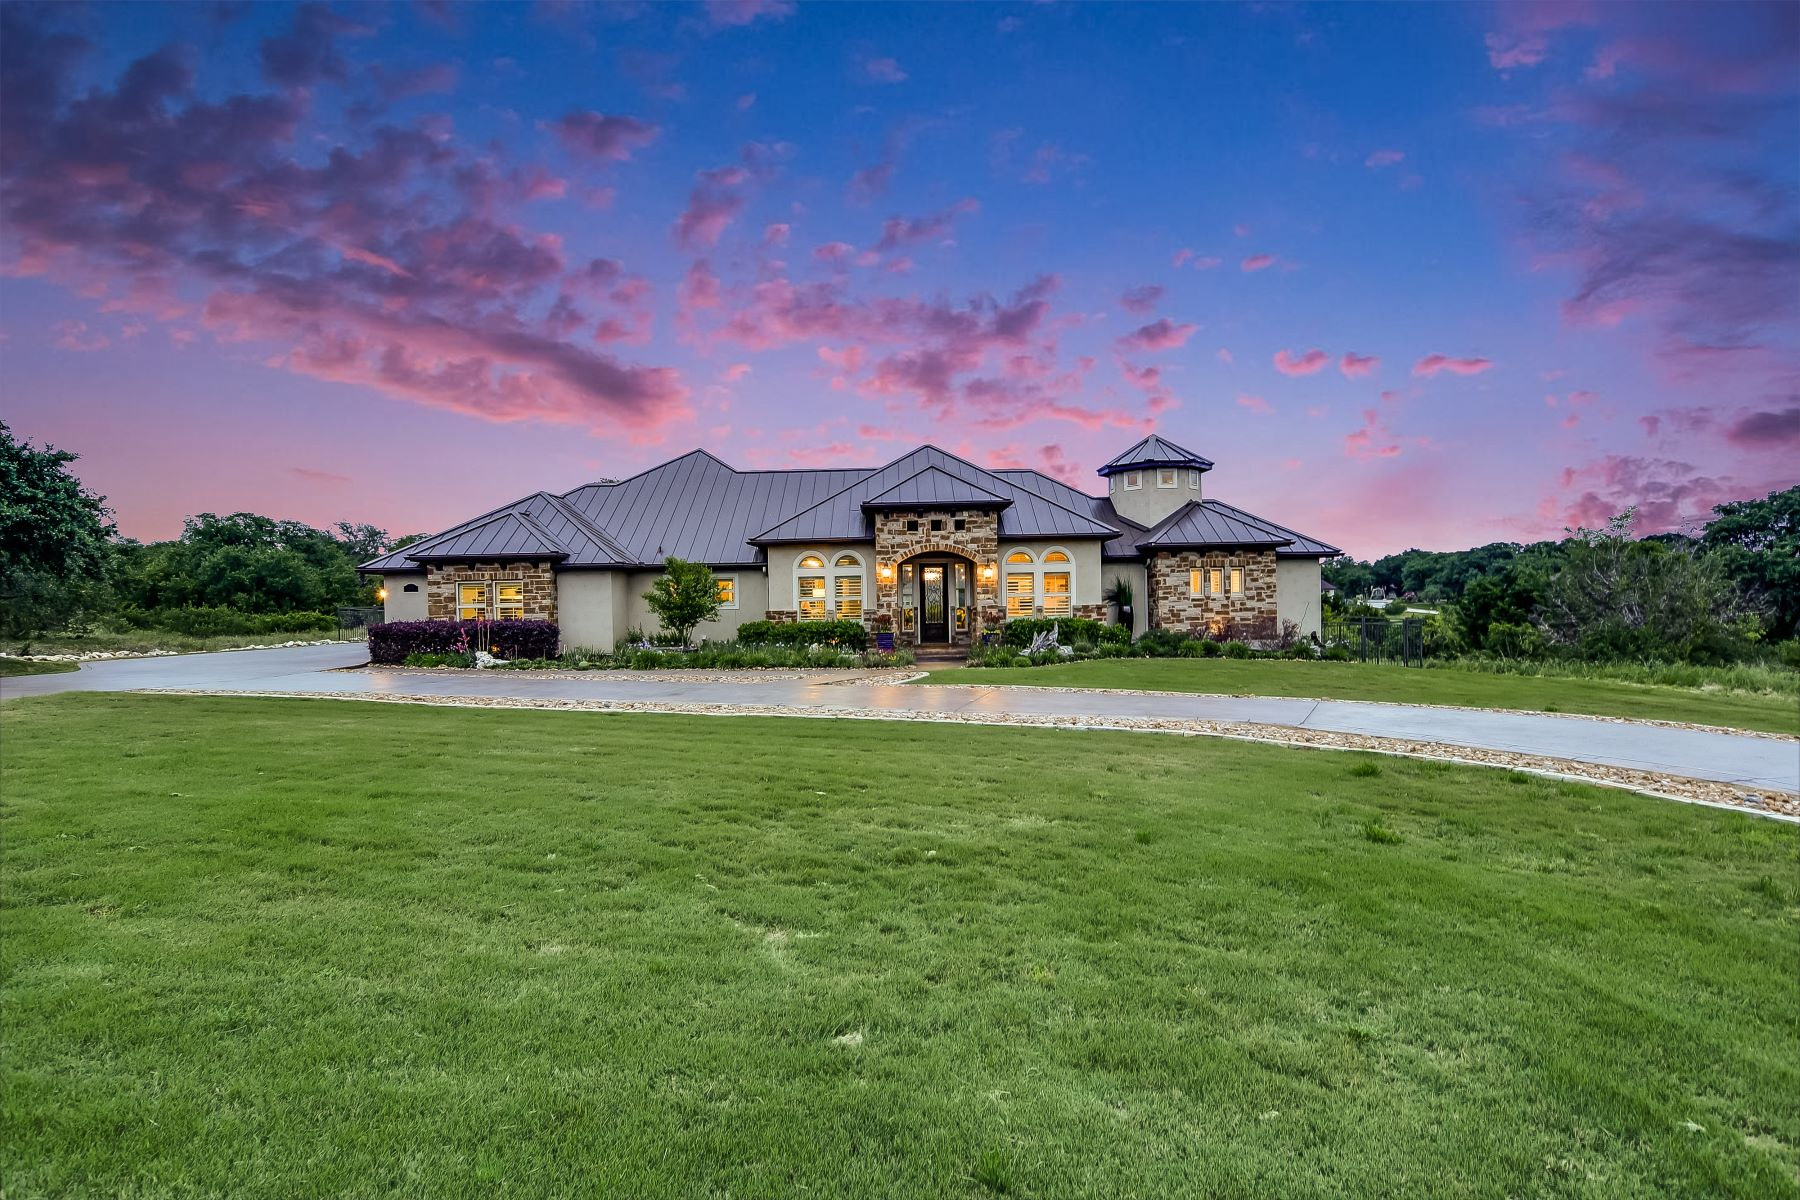 Single Family Homes for Sale at 1226 Vintage Way, New Braunfels, TX 78132 1226 Vintage Way New Braunfels, Texas 78132 United States